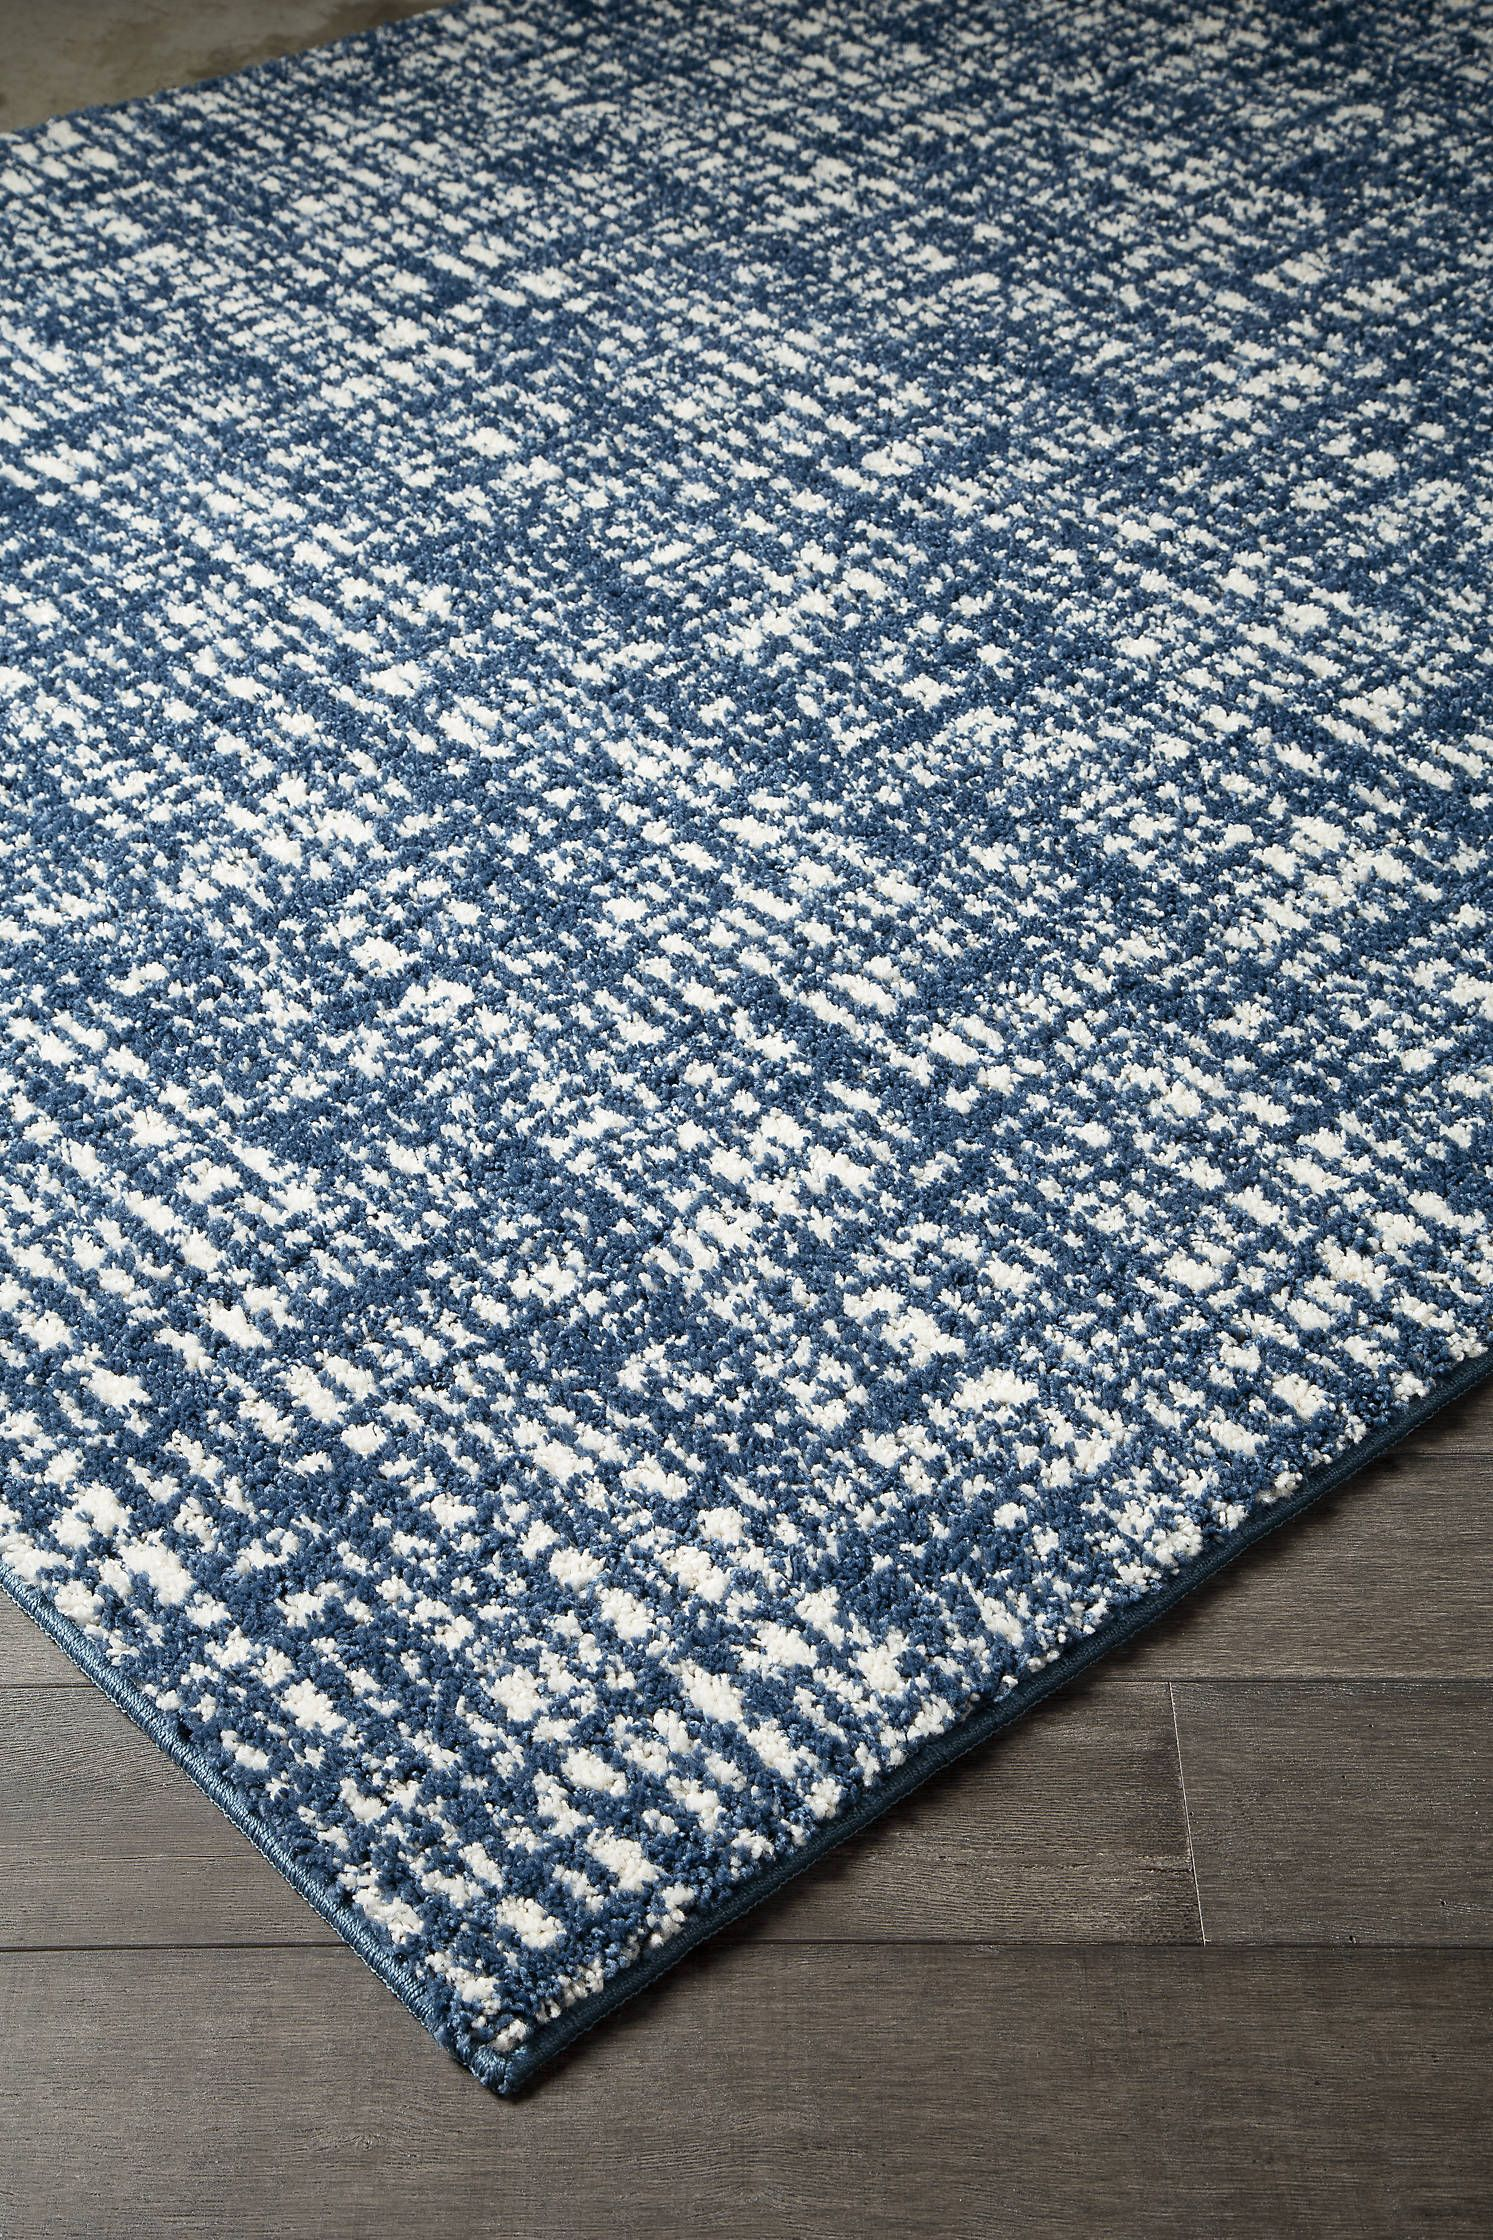 Norris Blue White Patterned Medium Rug Perfectly Imperfect Crosshatch Design Gives This Area Rug In Denim Blue And White A Navy And White Rug Rugs Large Rugs